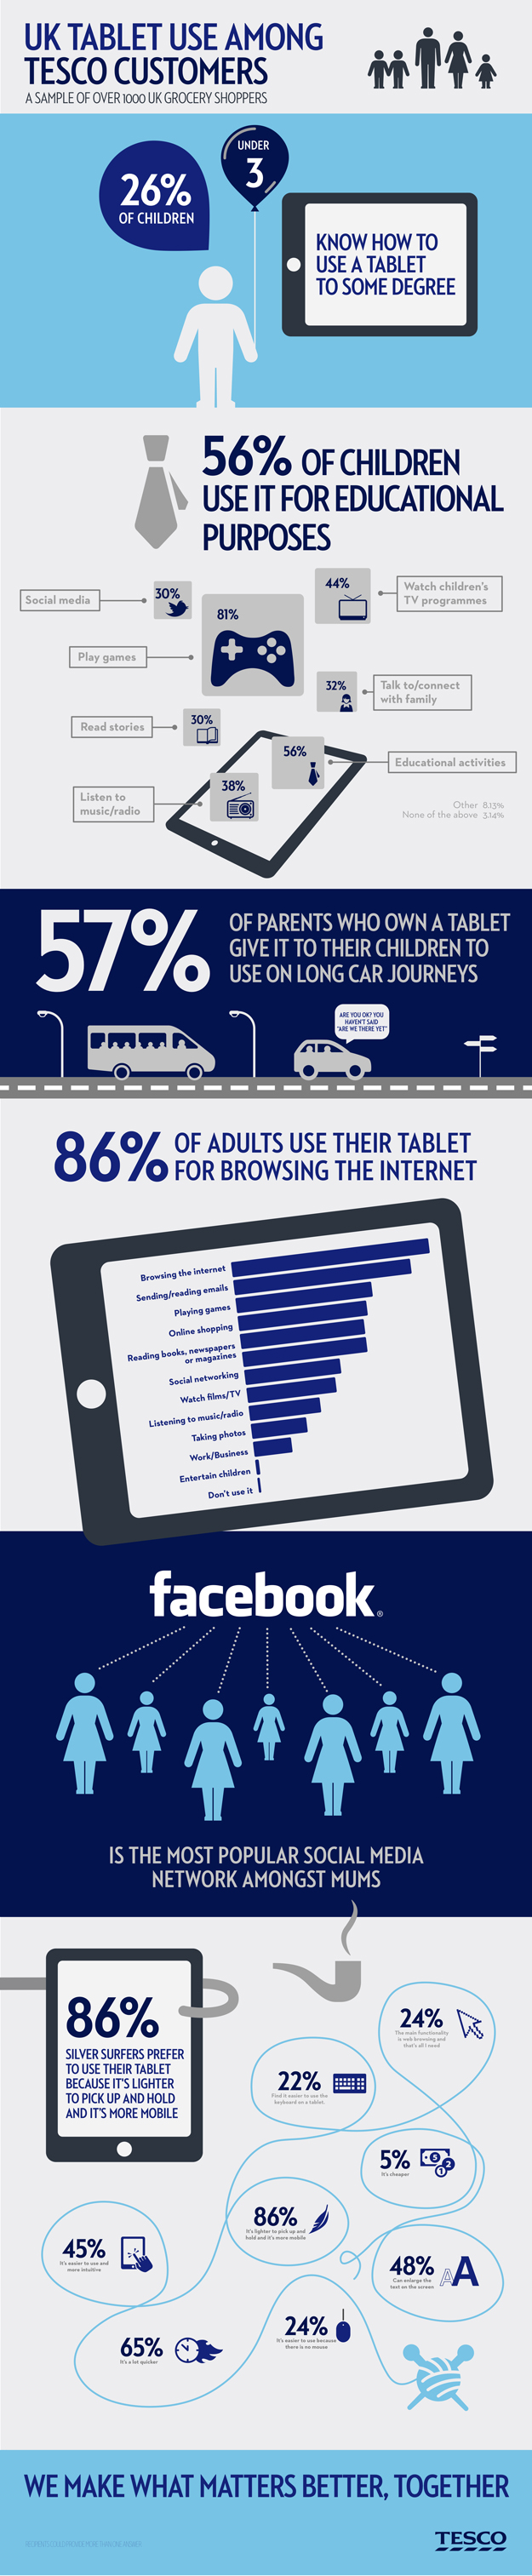 Tesco tablet use infographic